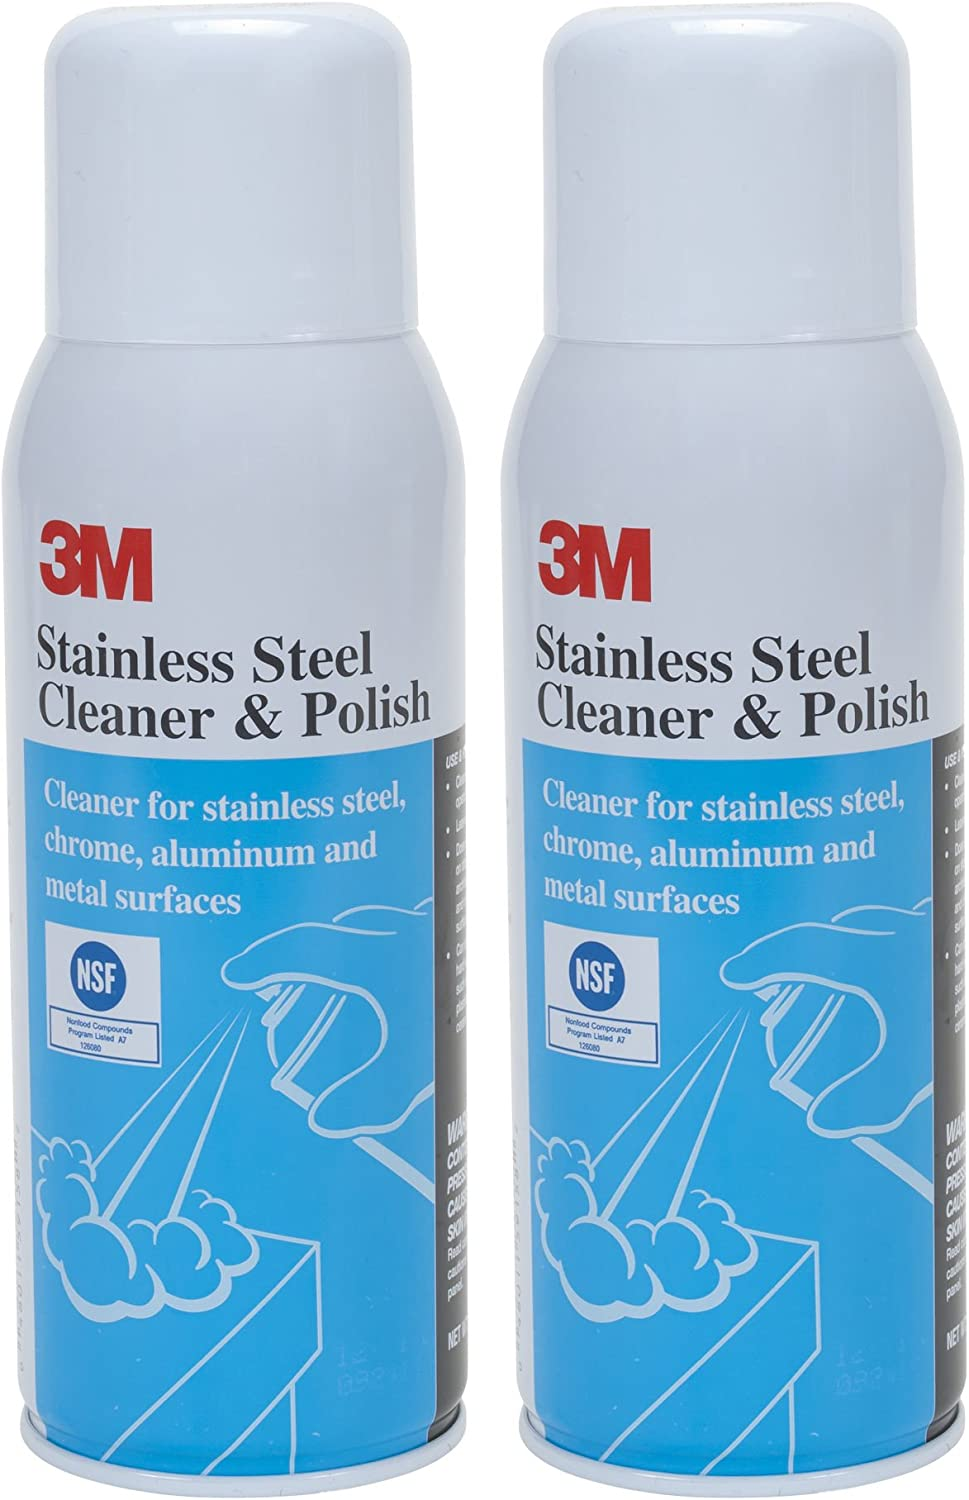 The 21-Ounce 3M Stainless Steel Polish and Cleaner